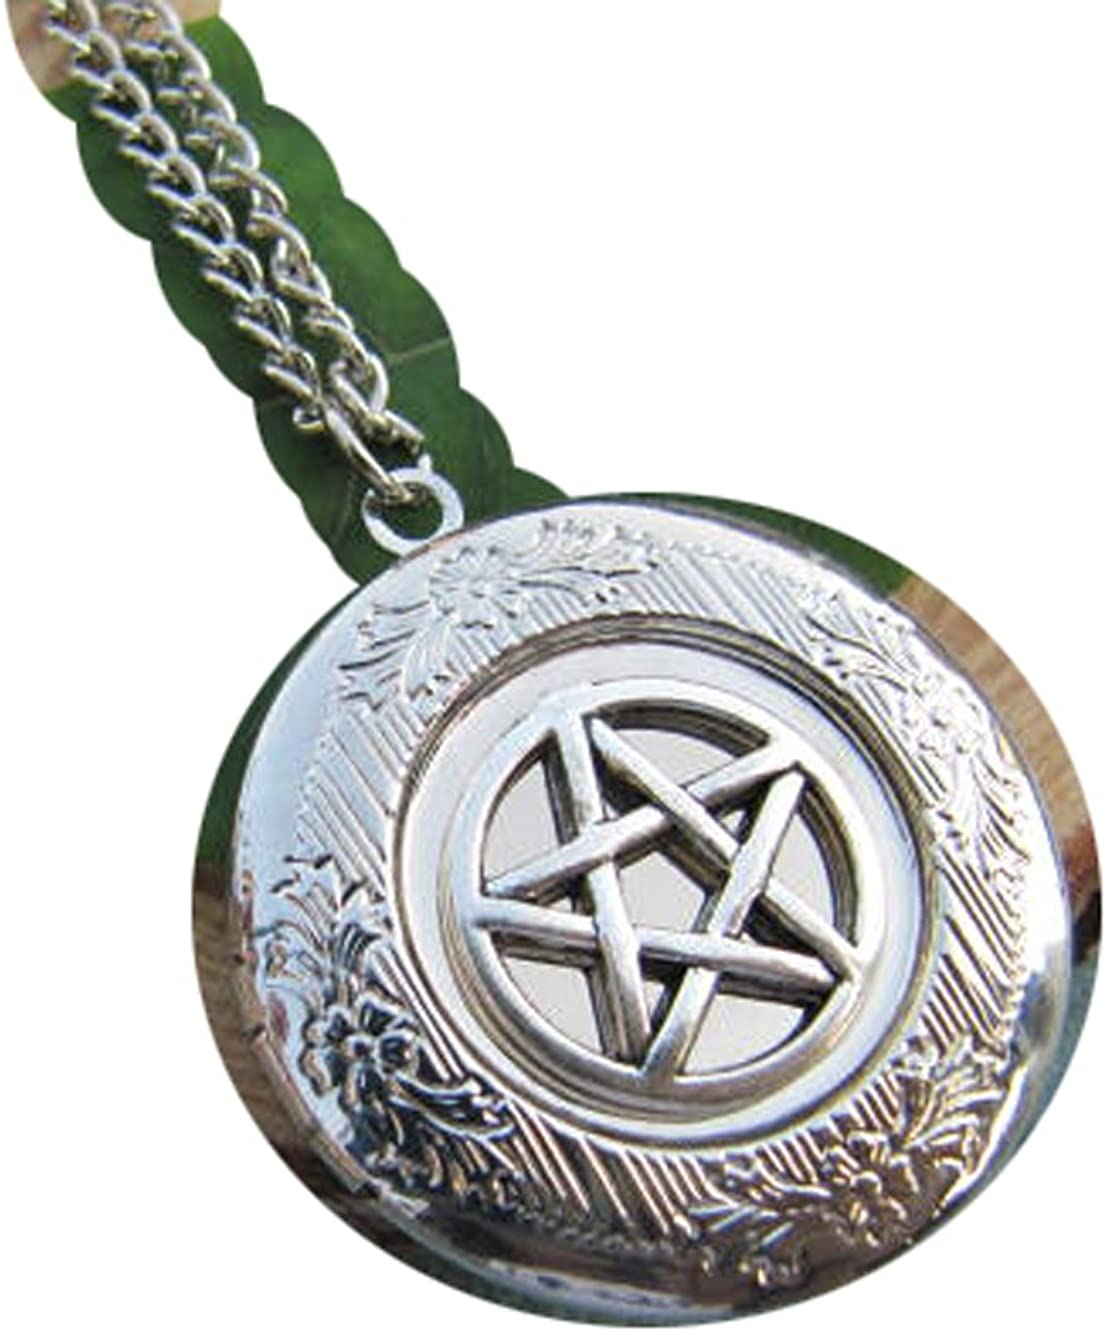 2Pcs Silver Pentagram Locket Necklace, Small Locket Necklace,Wicca Jewelry, Wiccan, Pagan